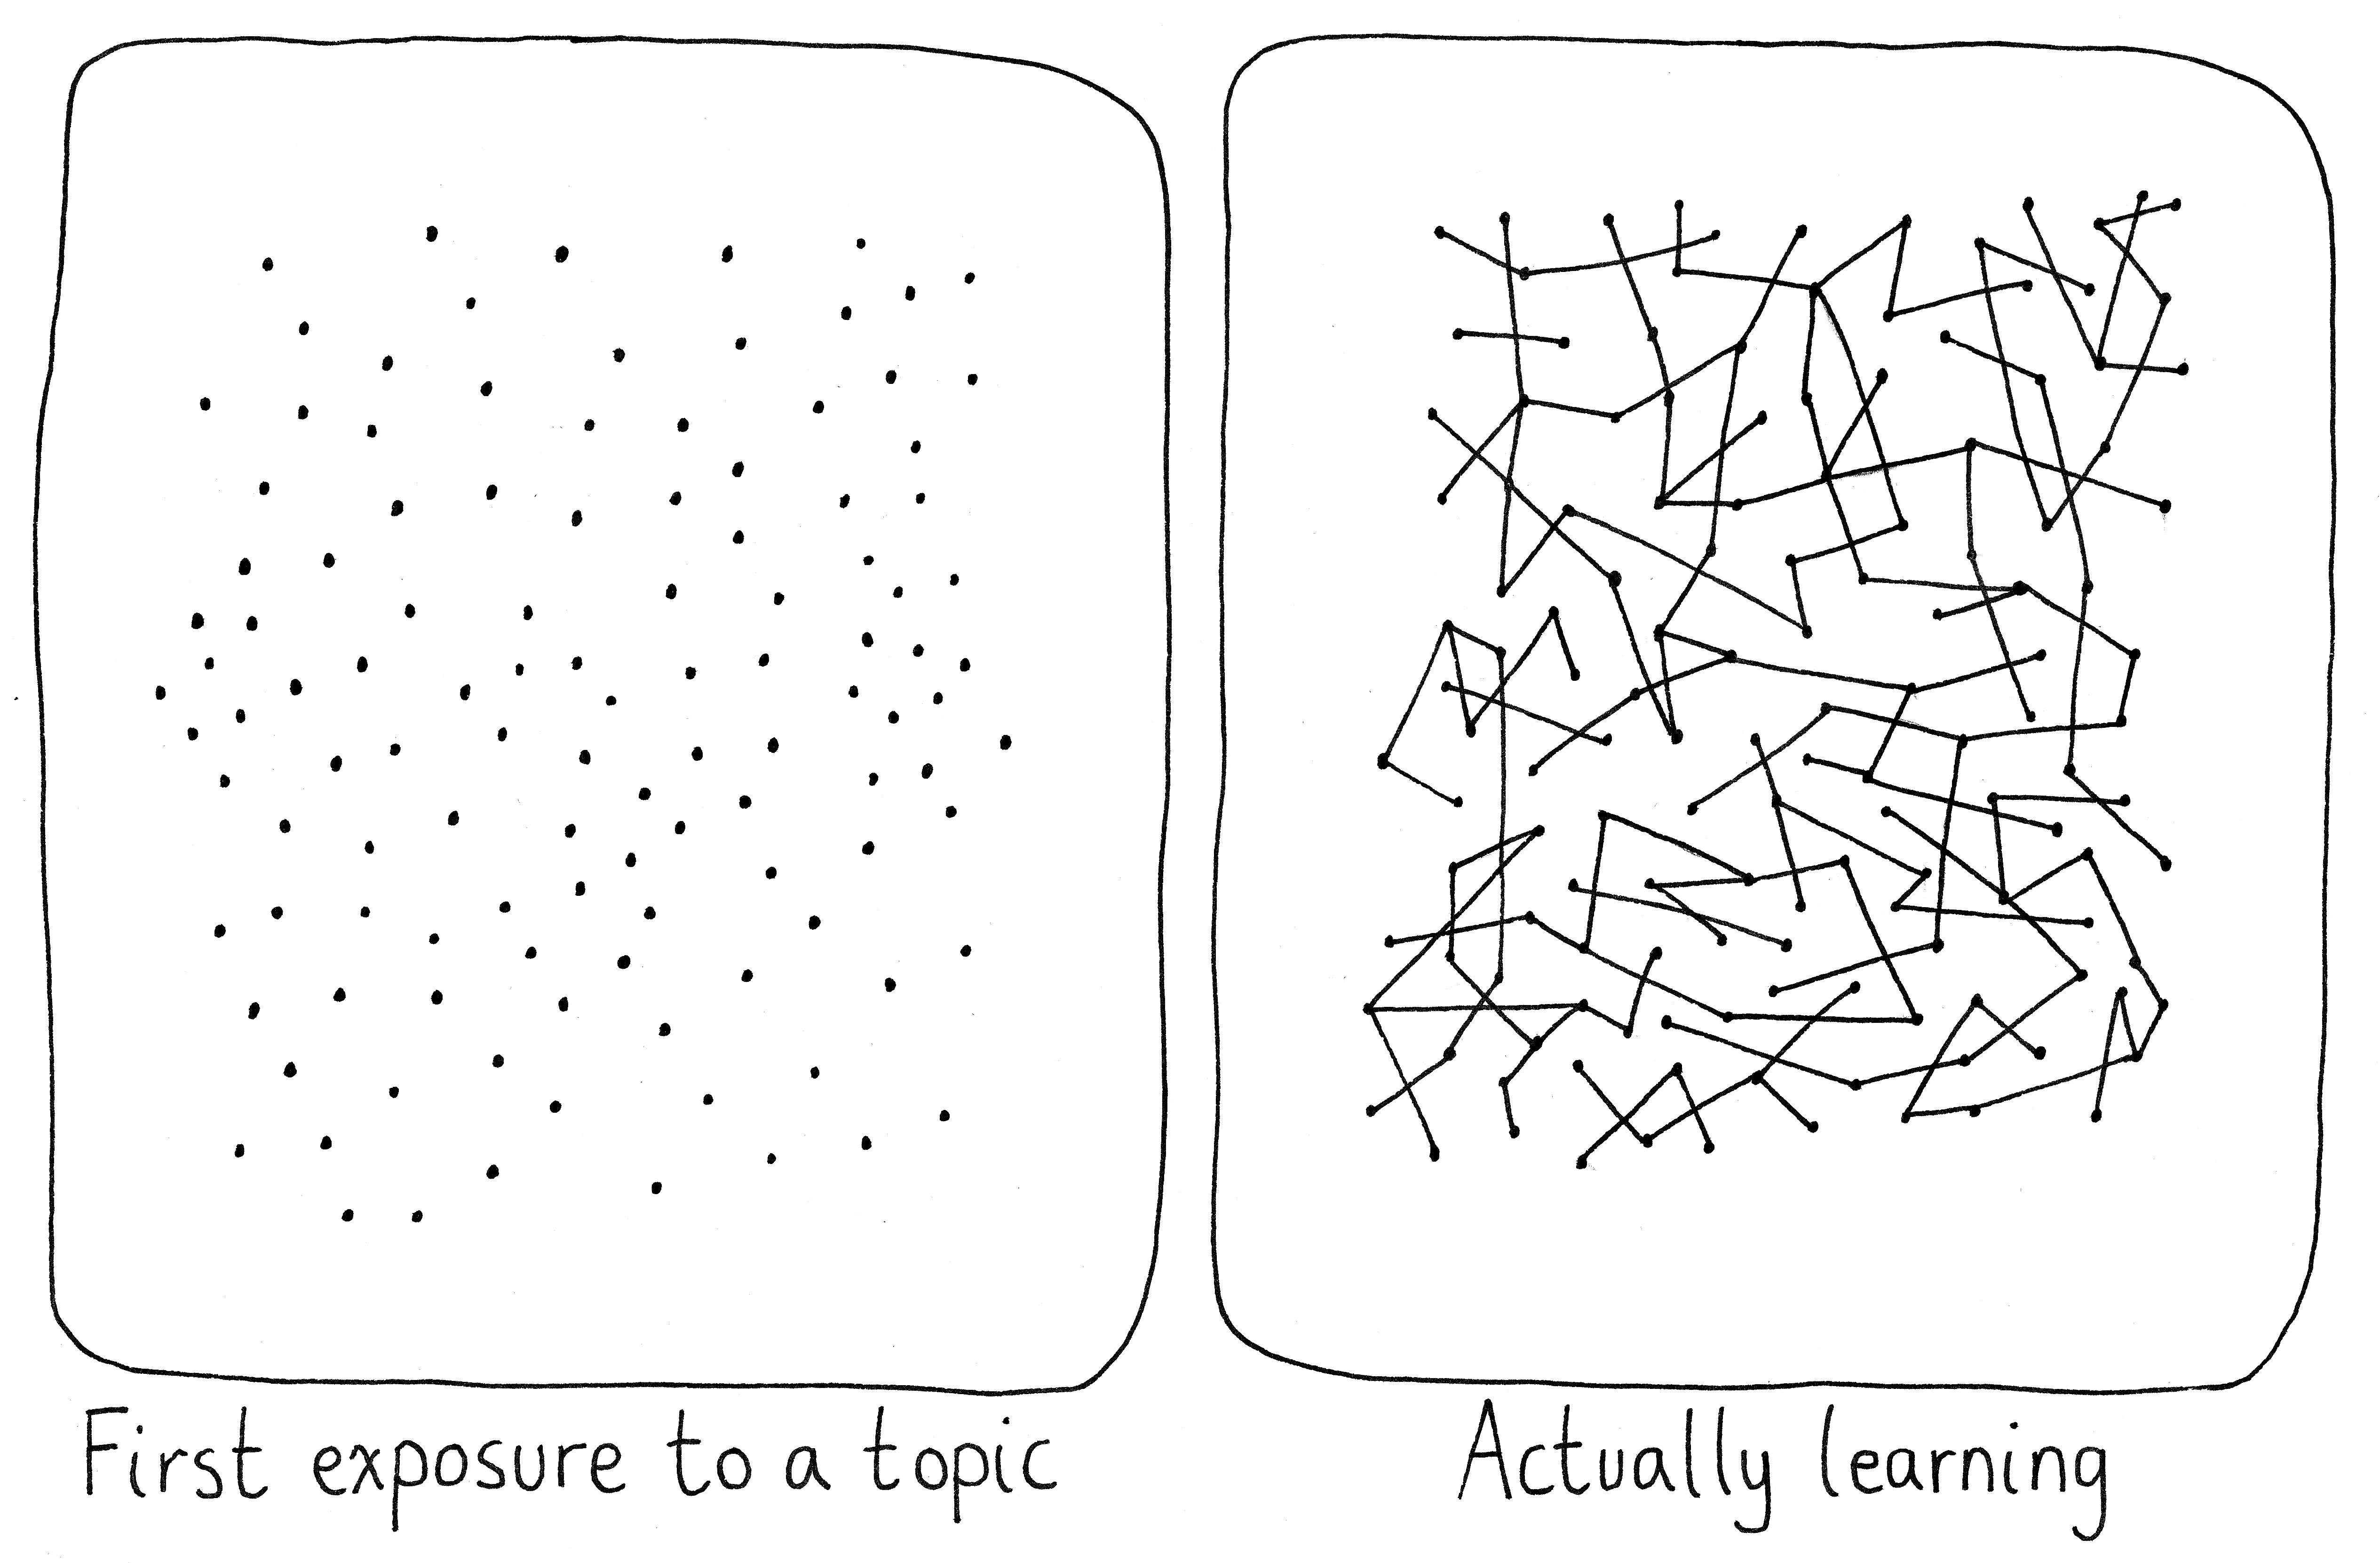 Learning is more than just accumulating dots. It's about connecting them.